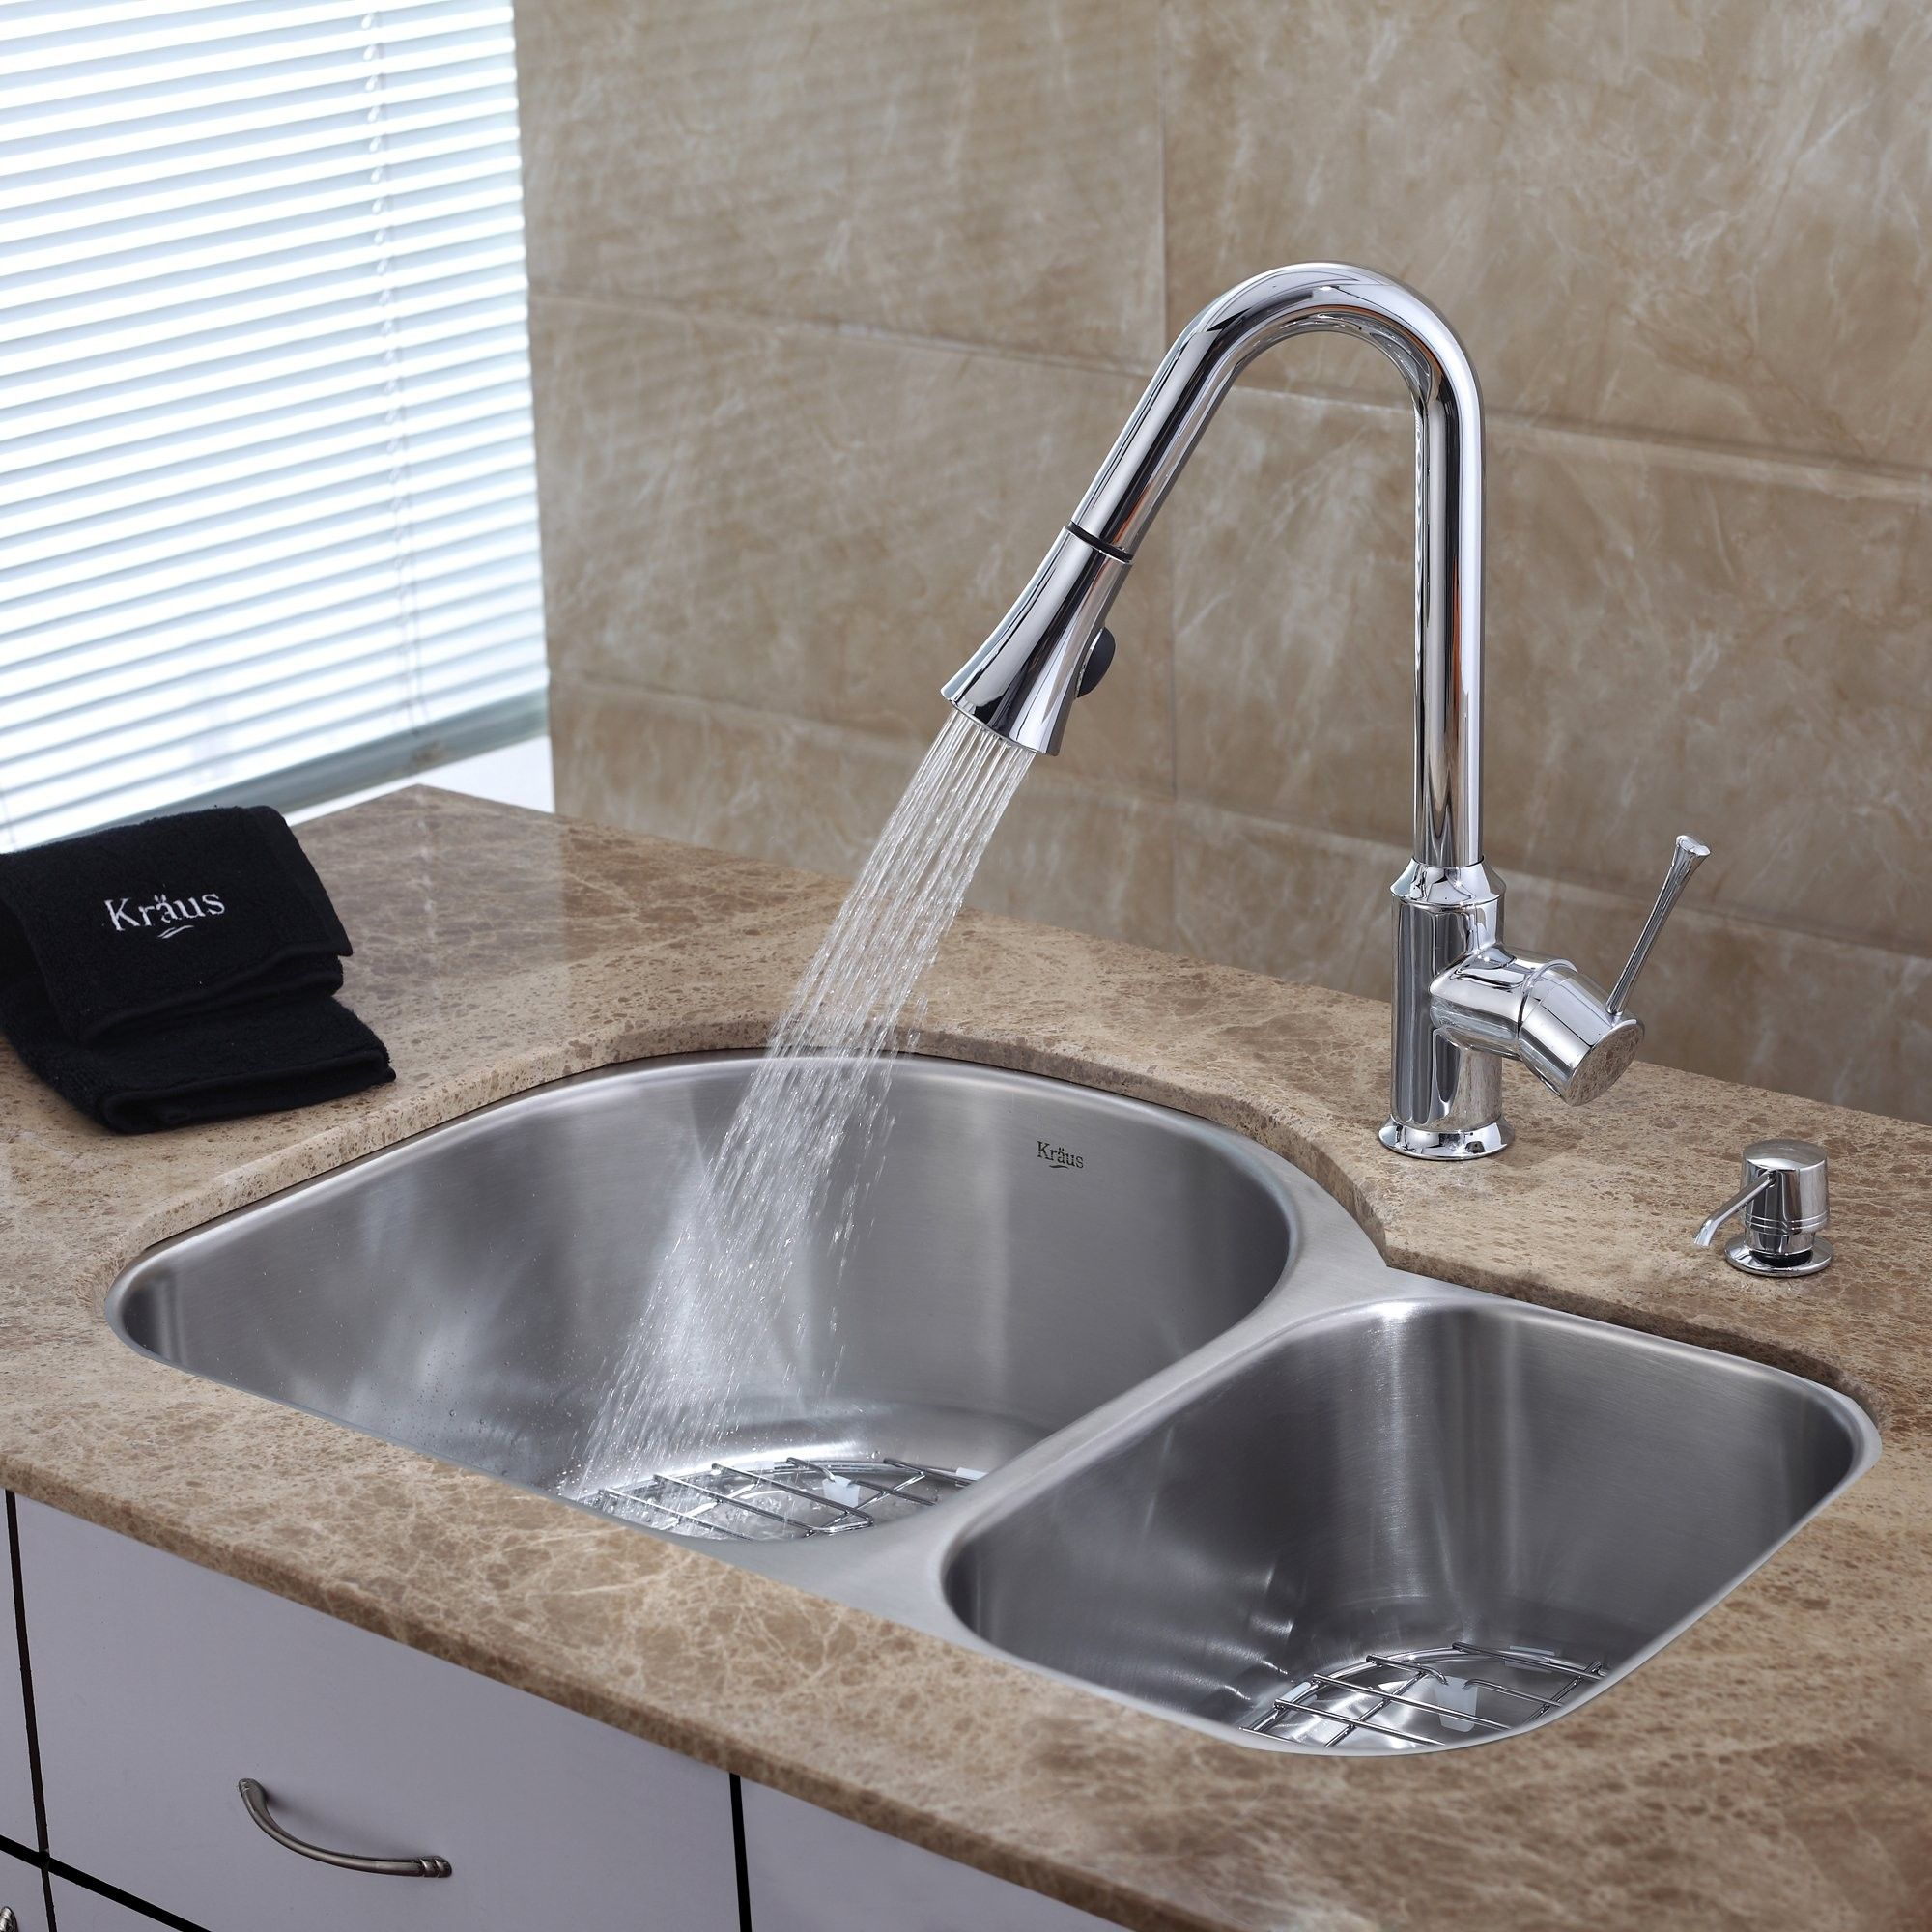 Popular Faucets Kitchen Kitchen Appliances Best Sink Faucets